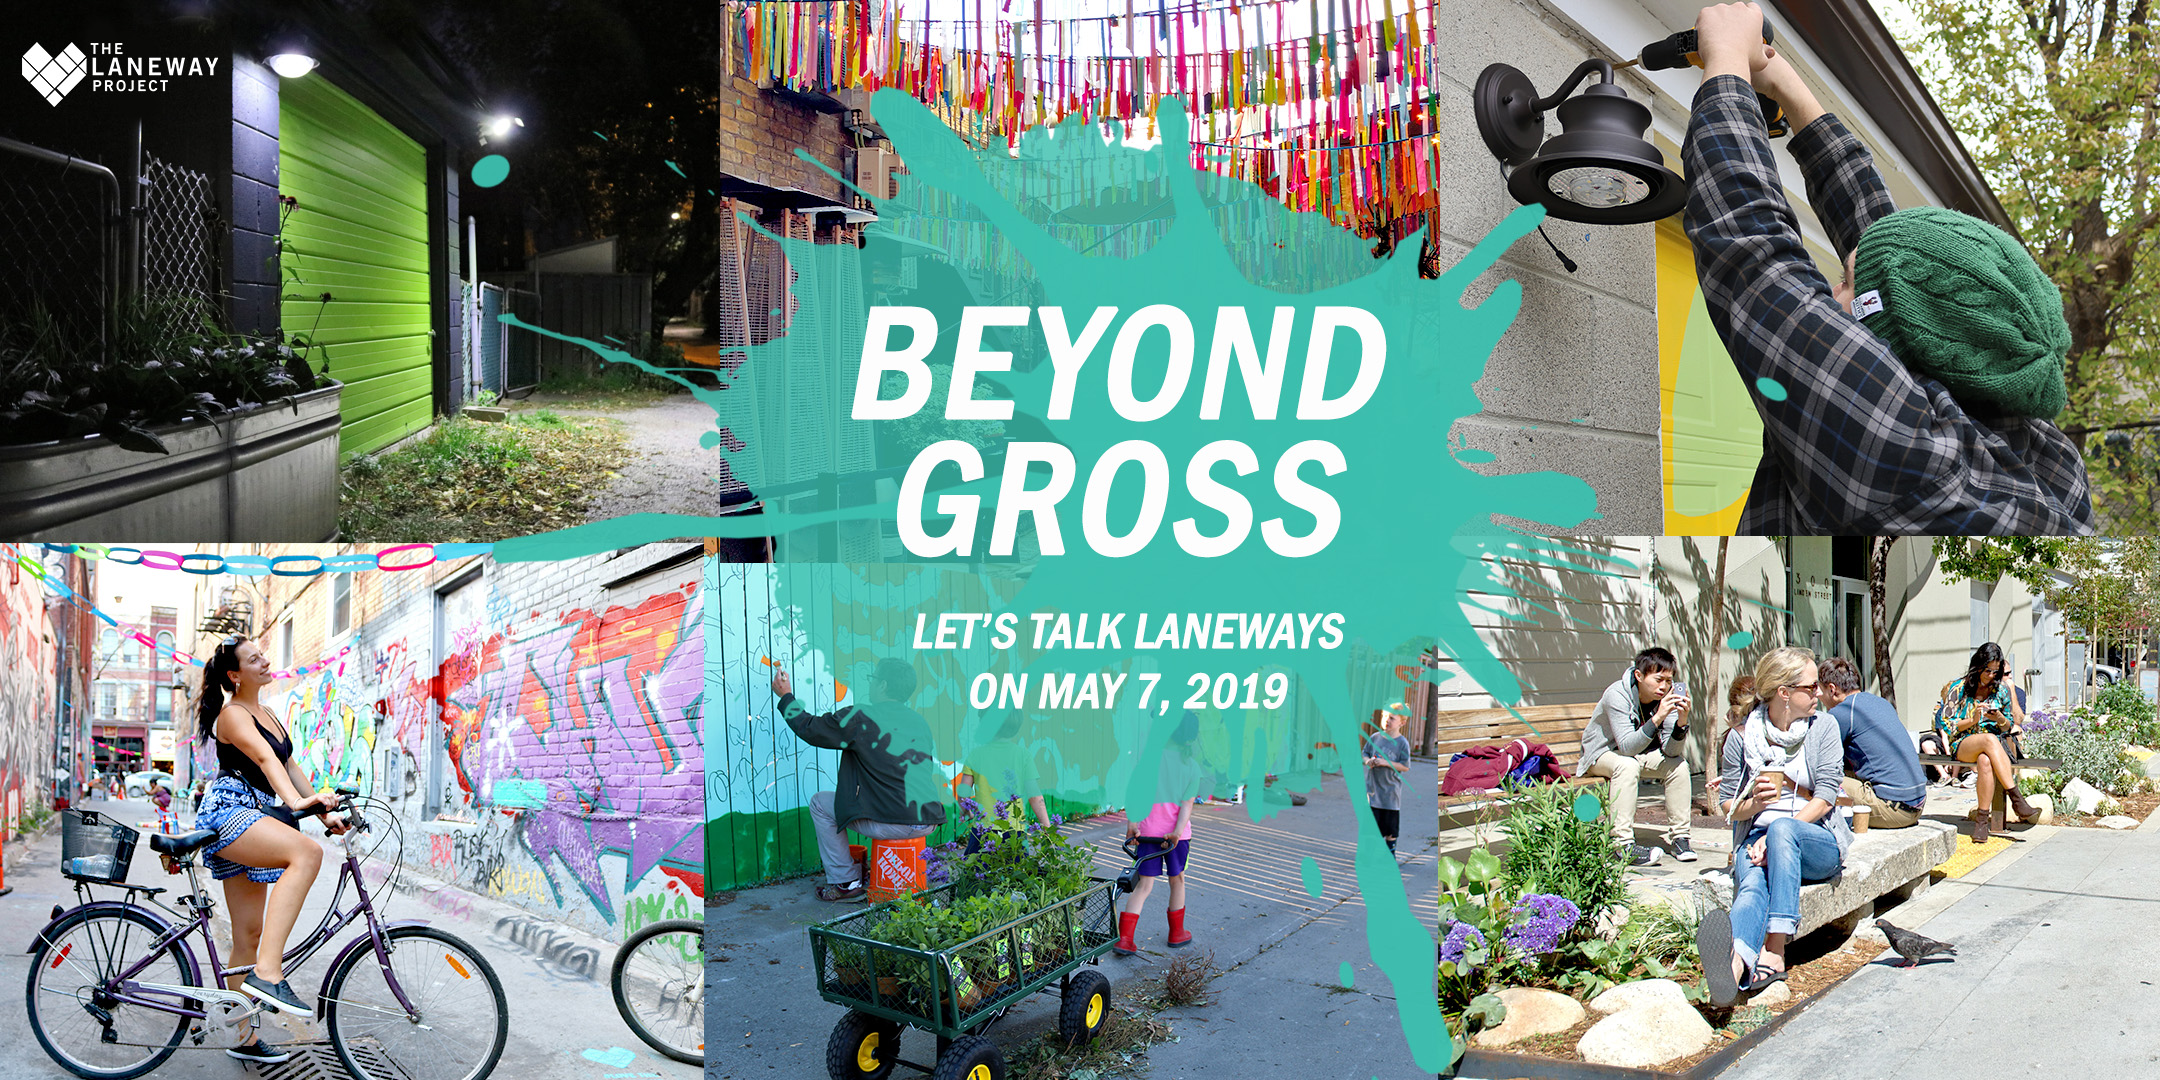 beyond gross_banner 2x1 b.jpg